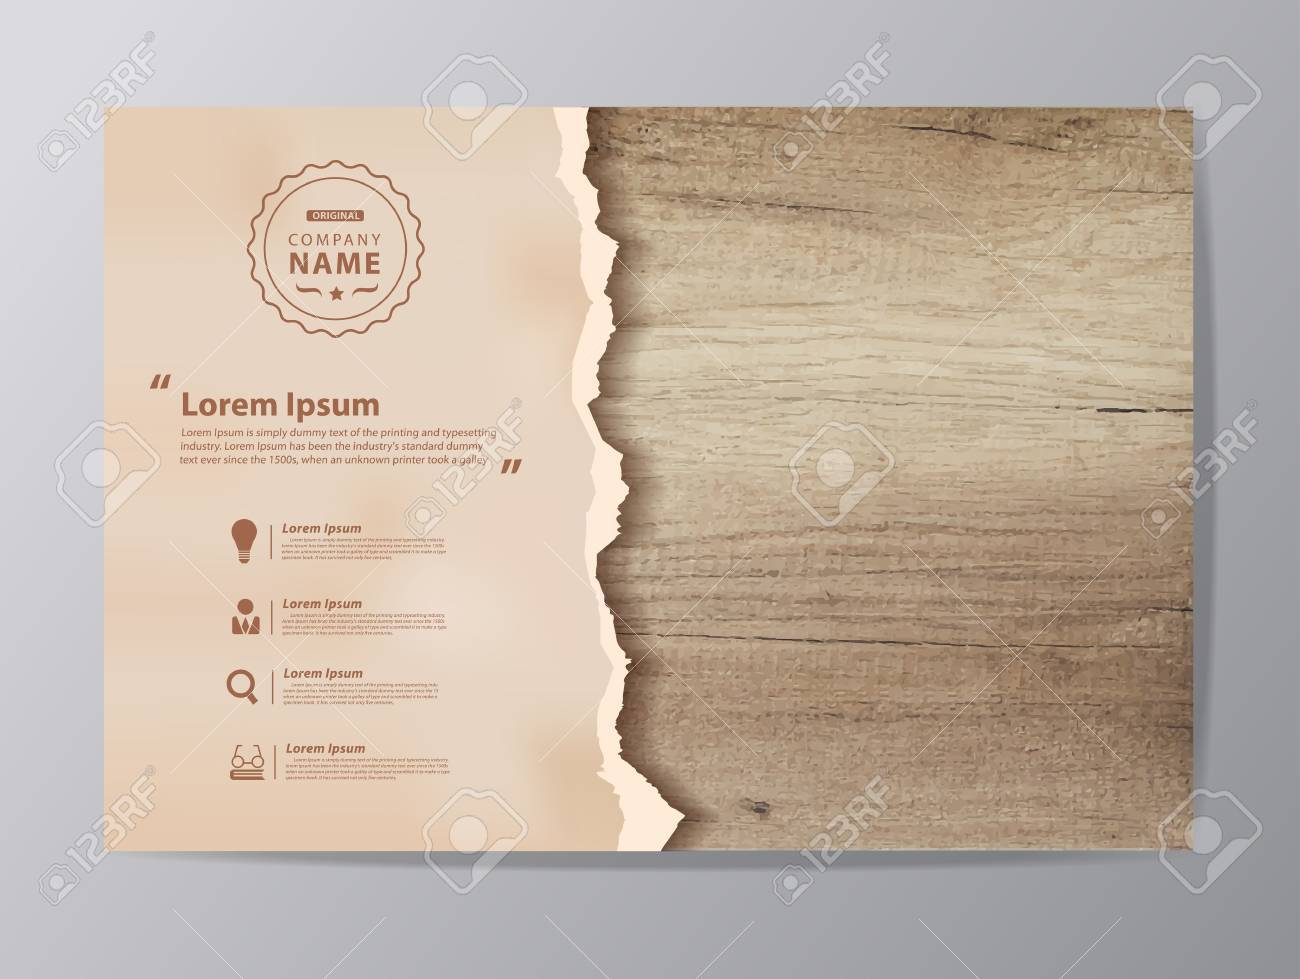 Ripped paper on texture of wood background, illustration modern design ( Image trace of wooden background ) - 56308098